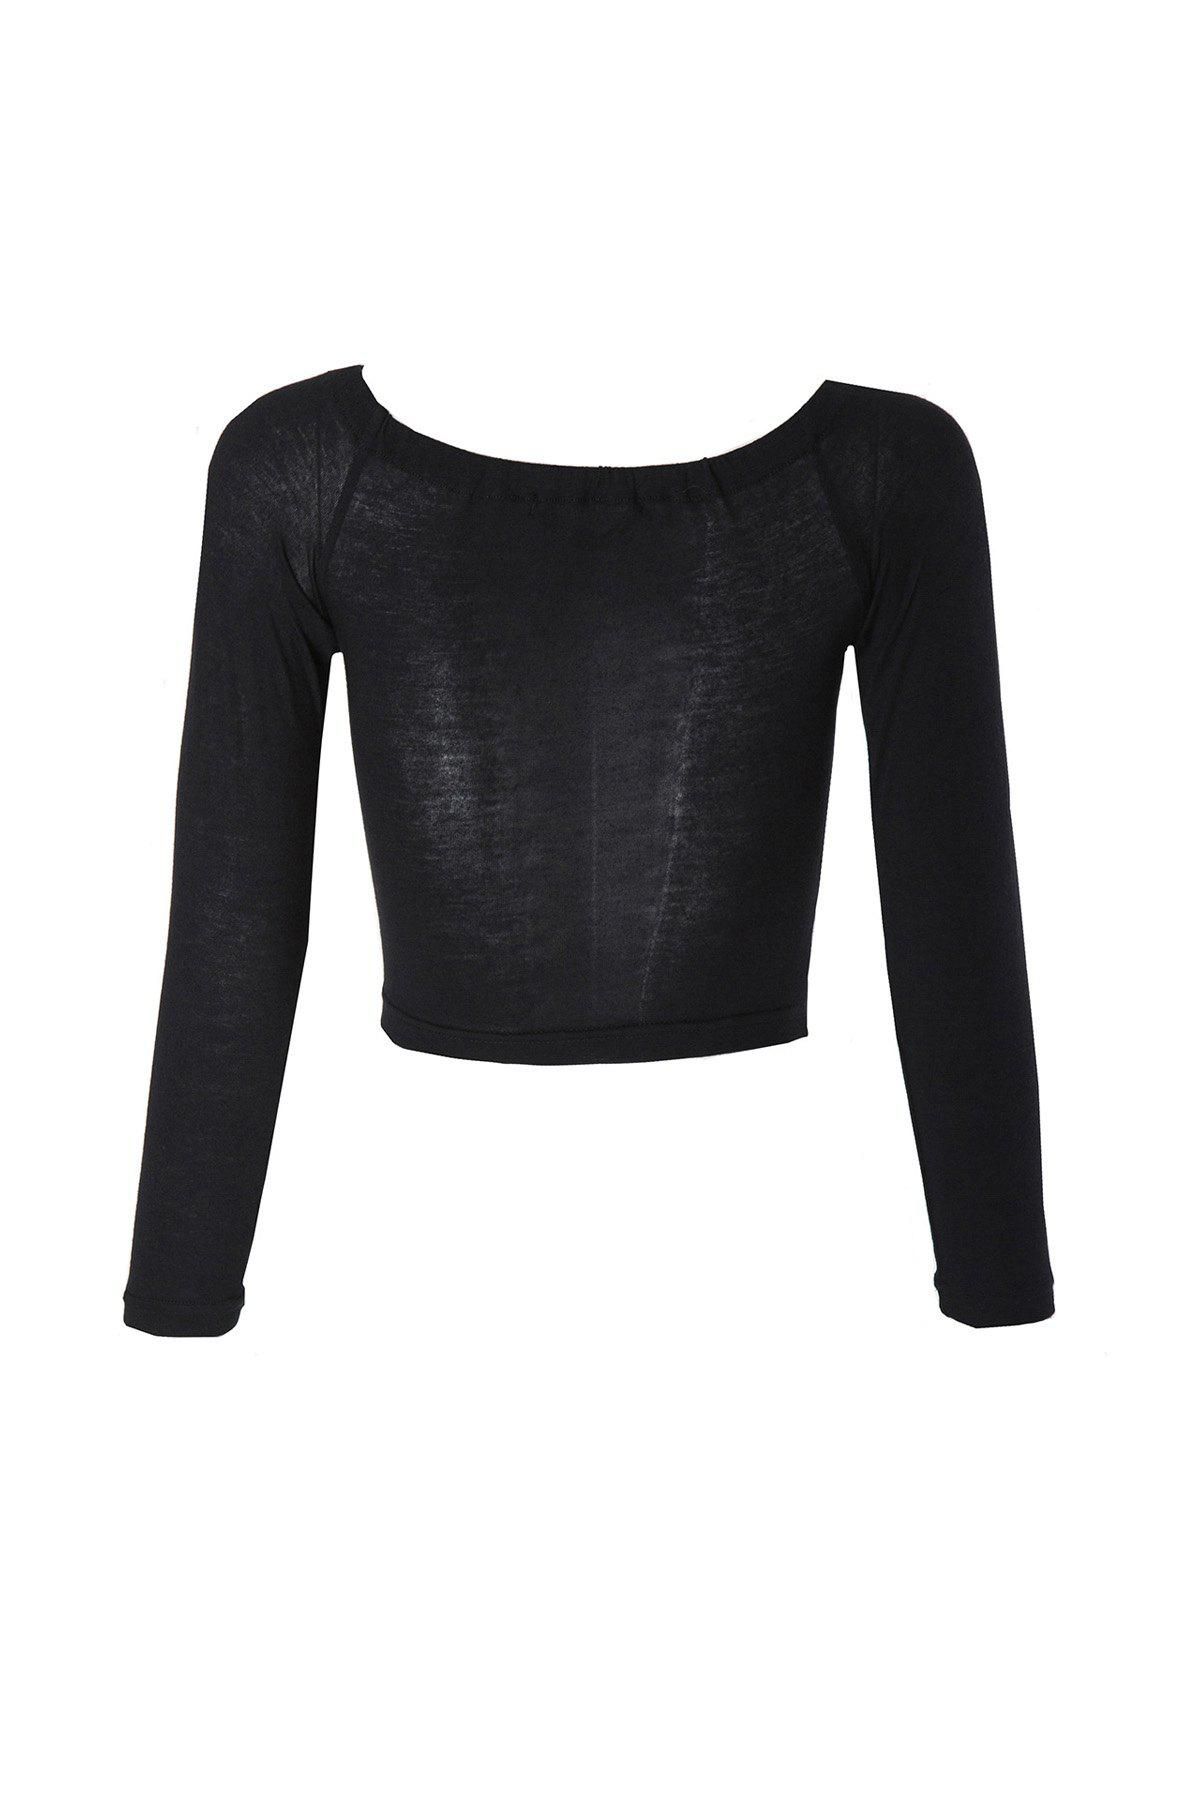 Sexy Style Slash Neck Solid Color Long Sleeve Crop Top For WomenWOMEN<br><br>Size: S; Color: BLACK; Material: Cotton Blends; Collar: Boat Neck; Sleeve Length: Full; Style: Fashion; Pattern Type: Solid; Weight: 0.130kg; Package Contents: 1 x Crop Top;